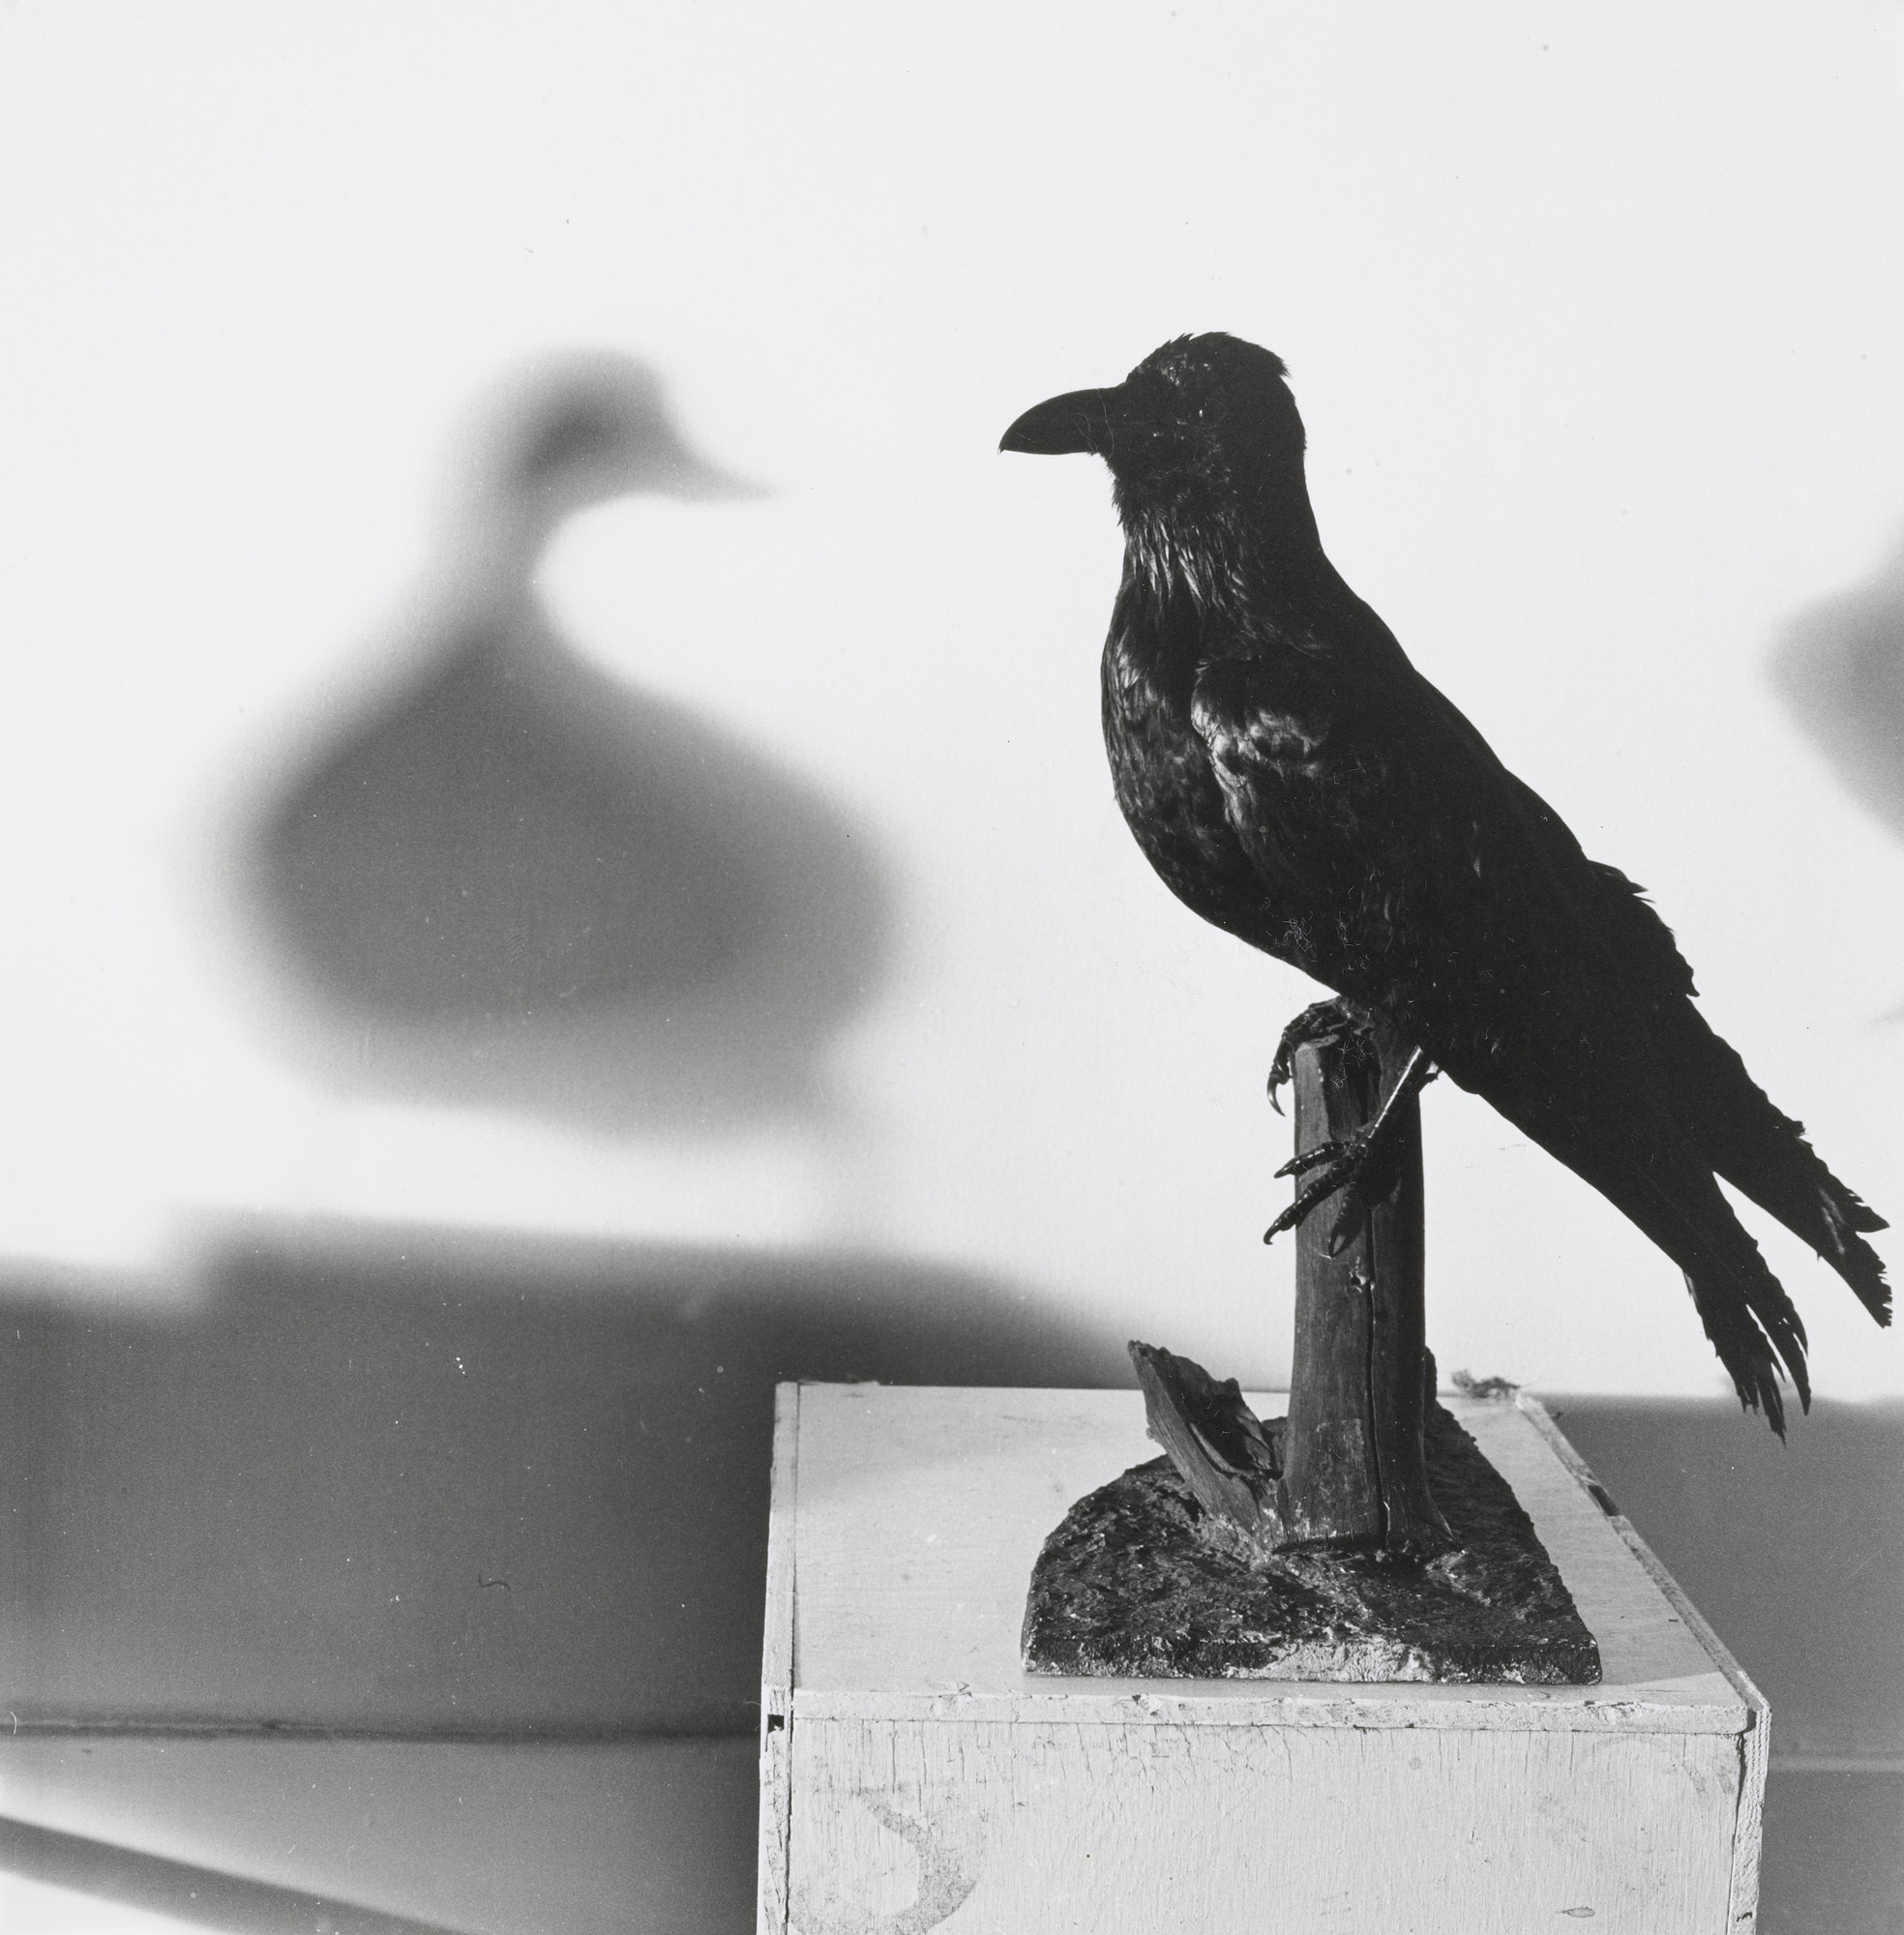 William Wegman. Crow/Duck. 1970